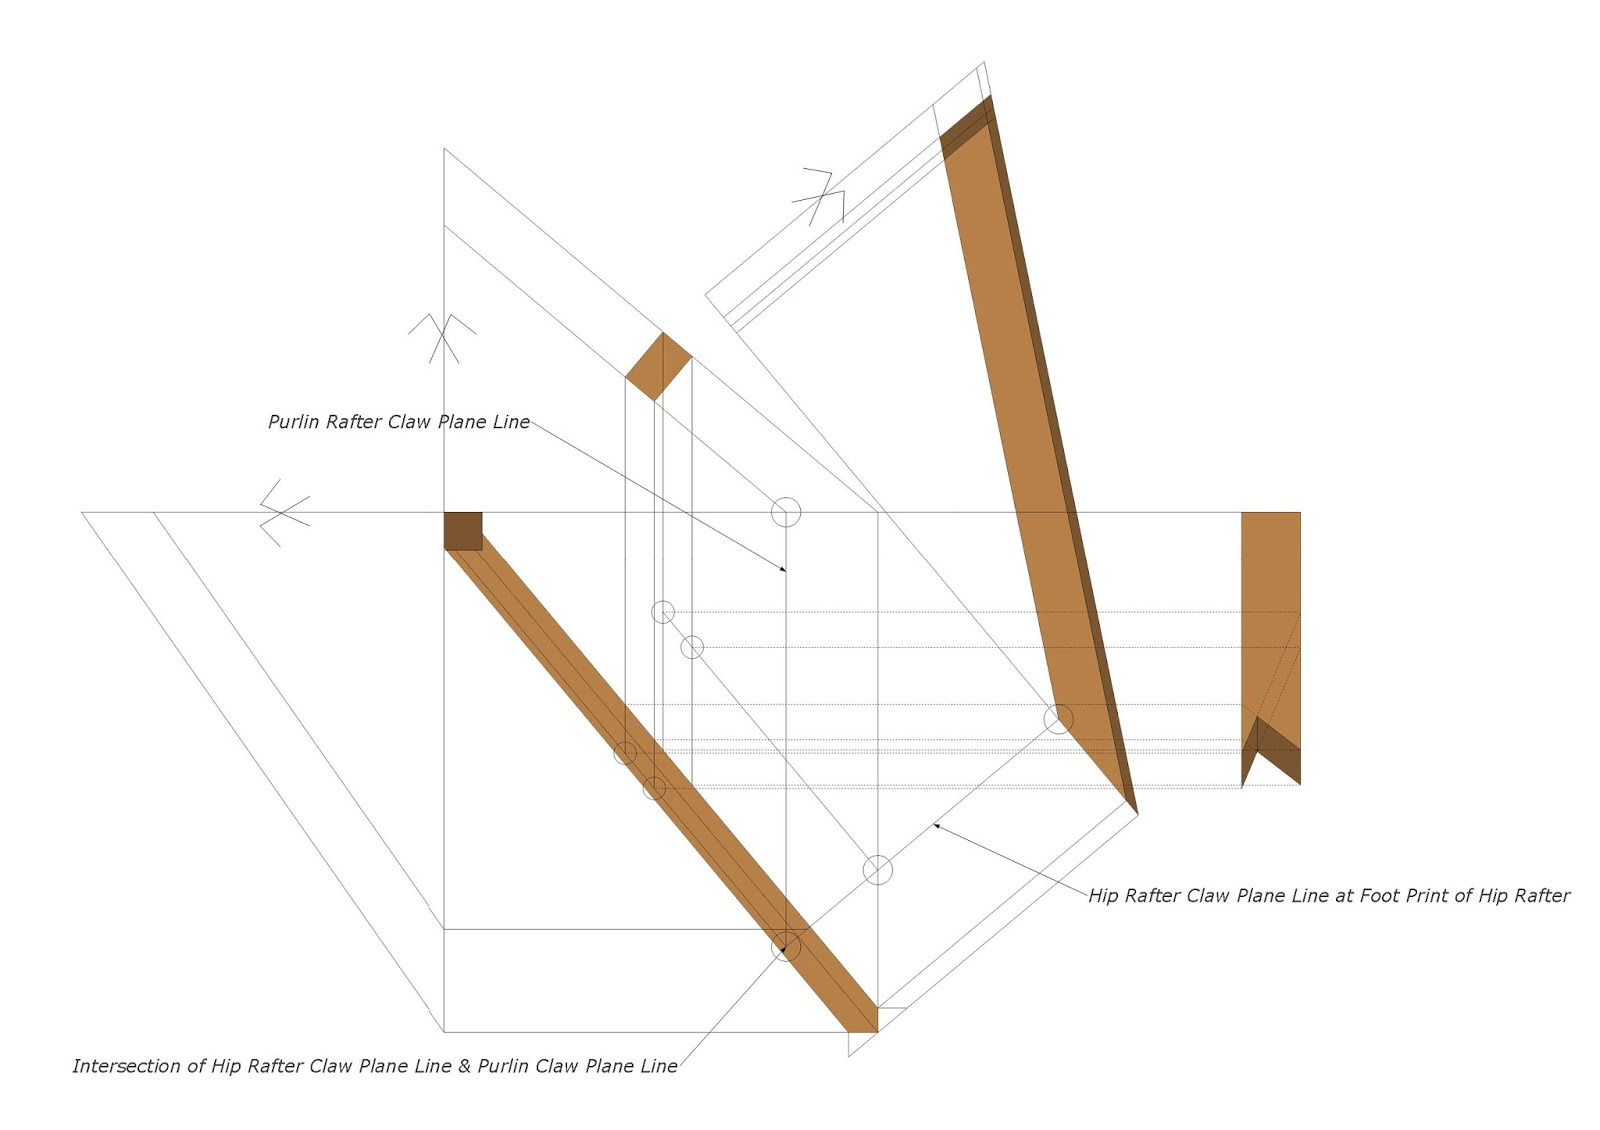 medium resolution of another example of developing the claw angle on the purlin rafter